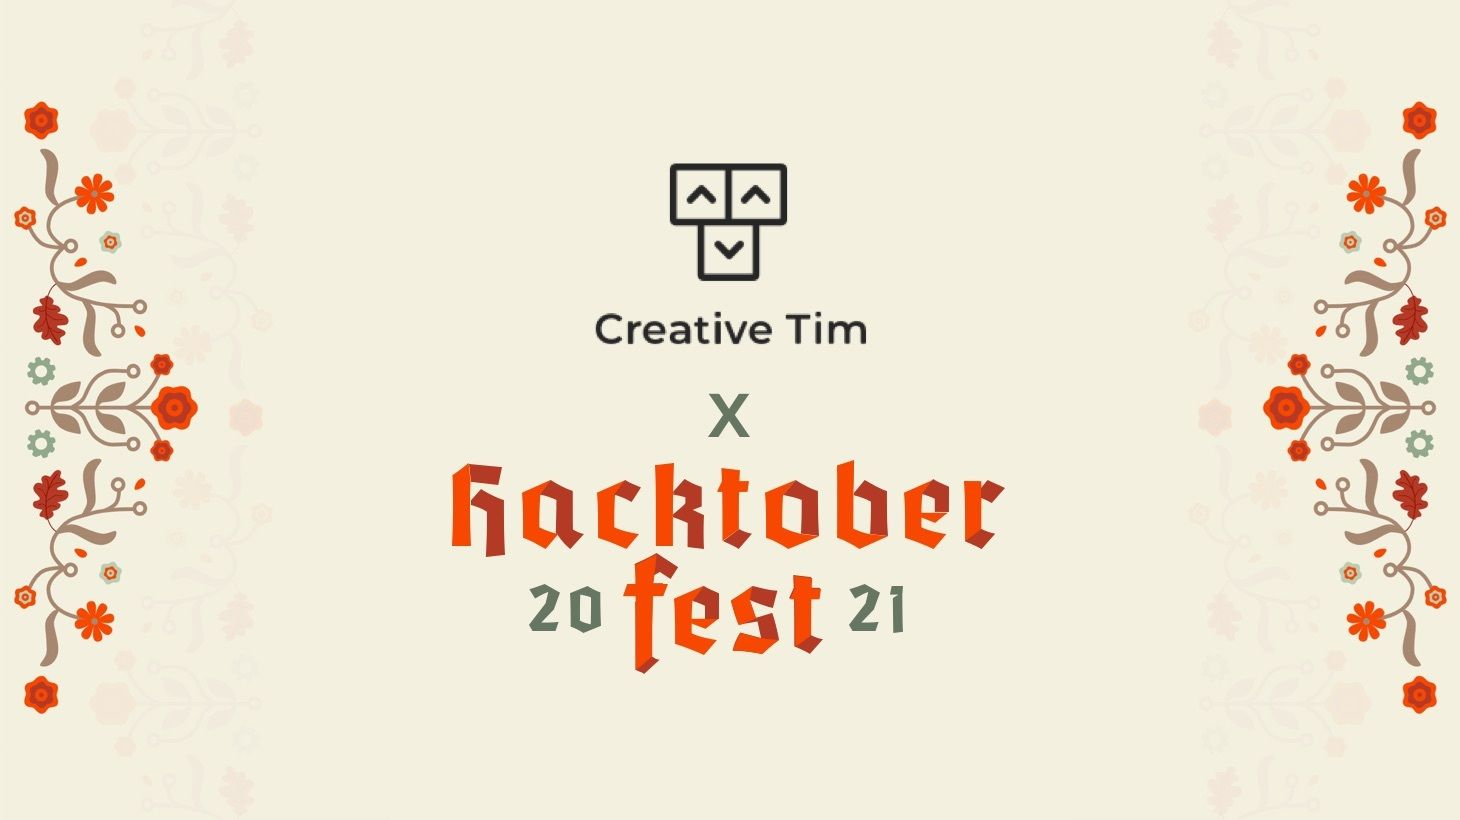 Join us for Hacktoberfest and Win 1 of the 10 special Creative Tim prizes